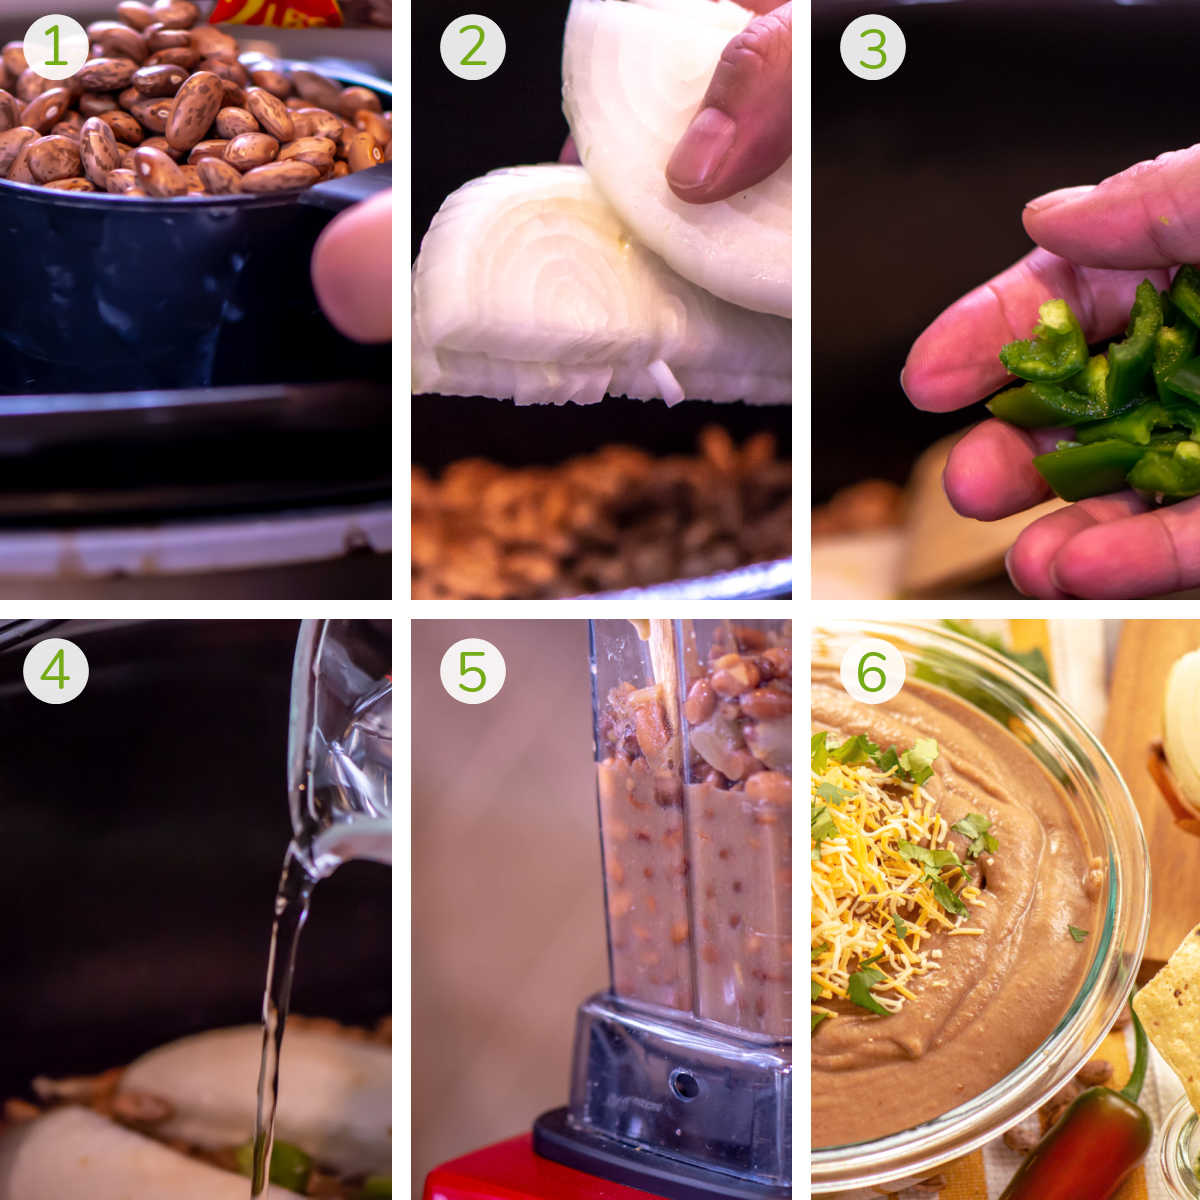 photos showing adding the ingredients to the slow cooker, blending in the high speed blender, and serving.